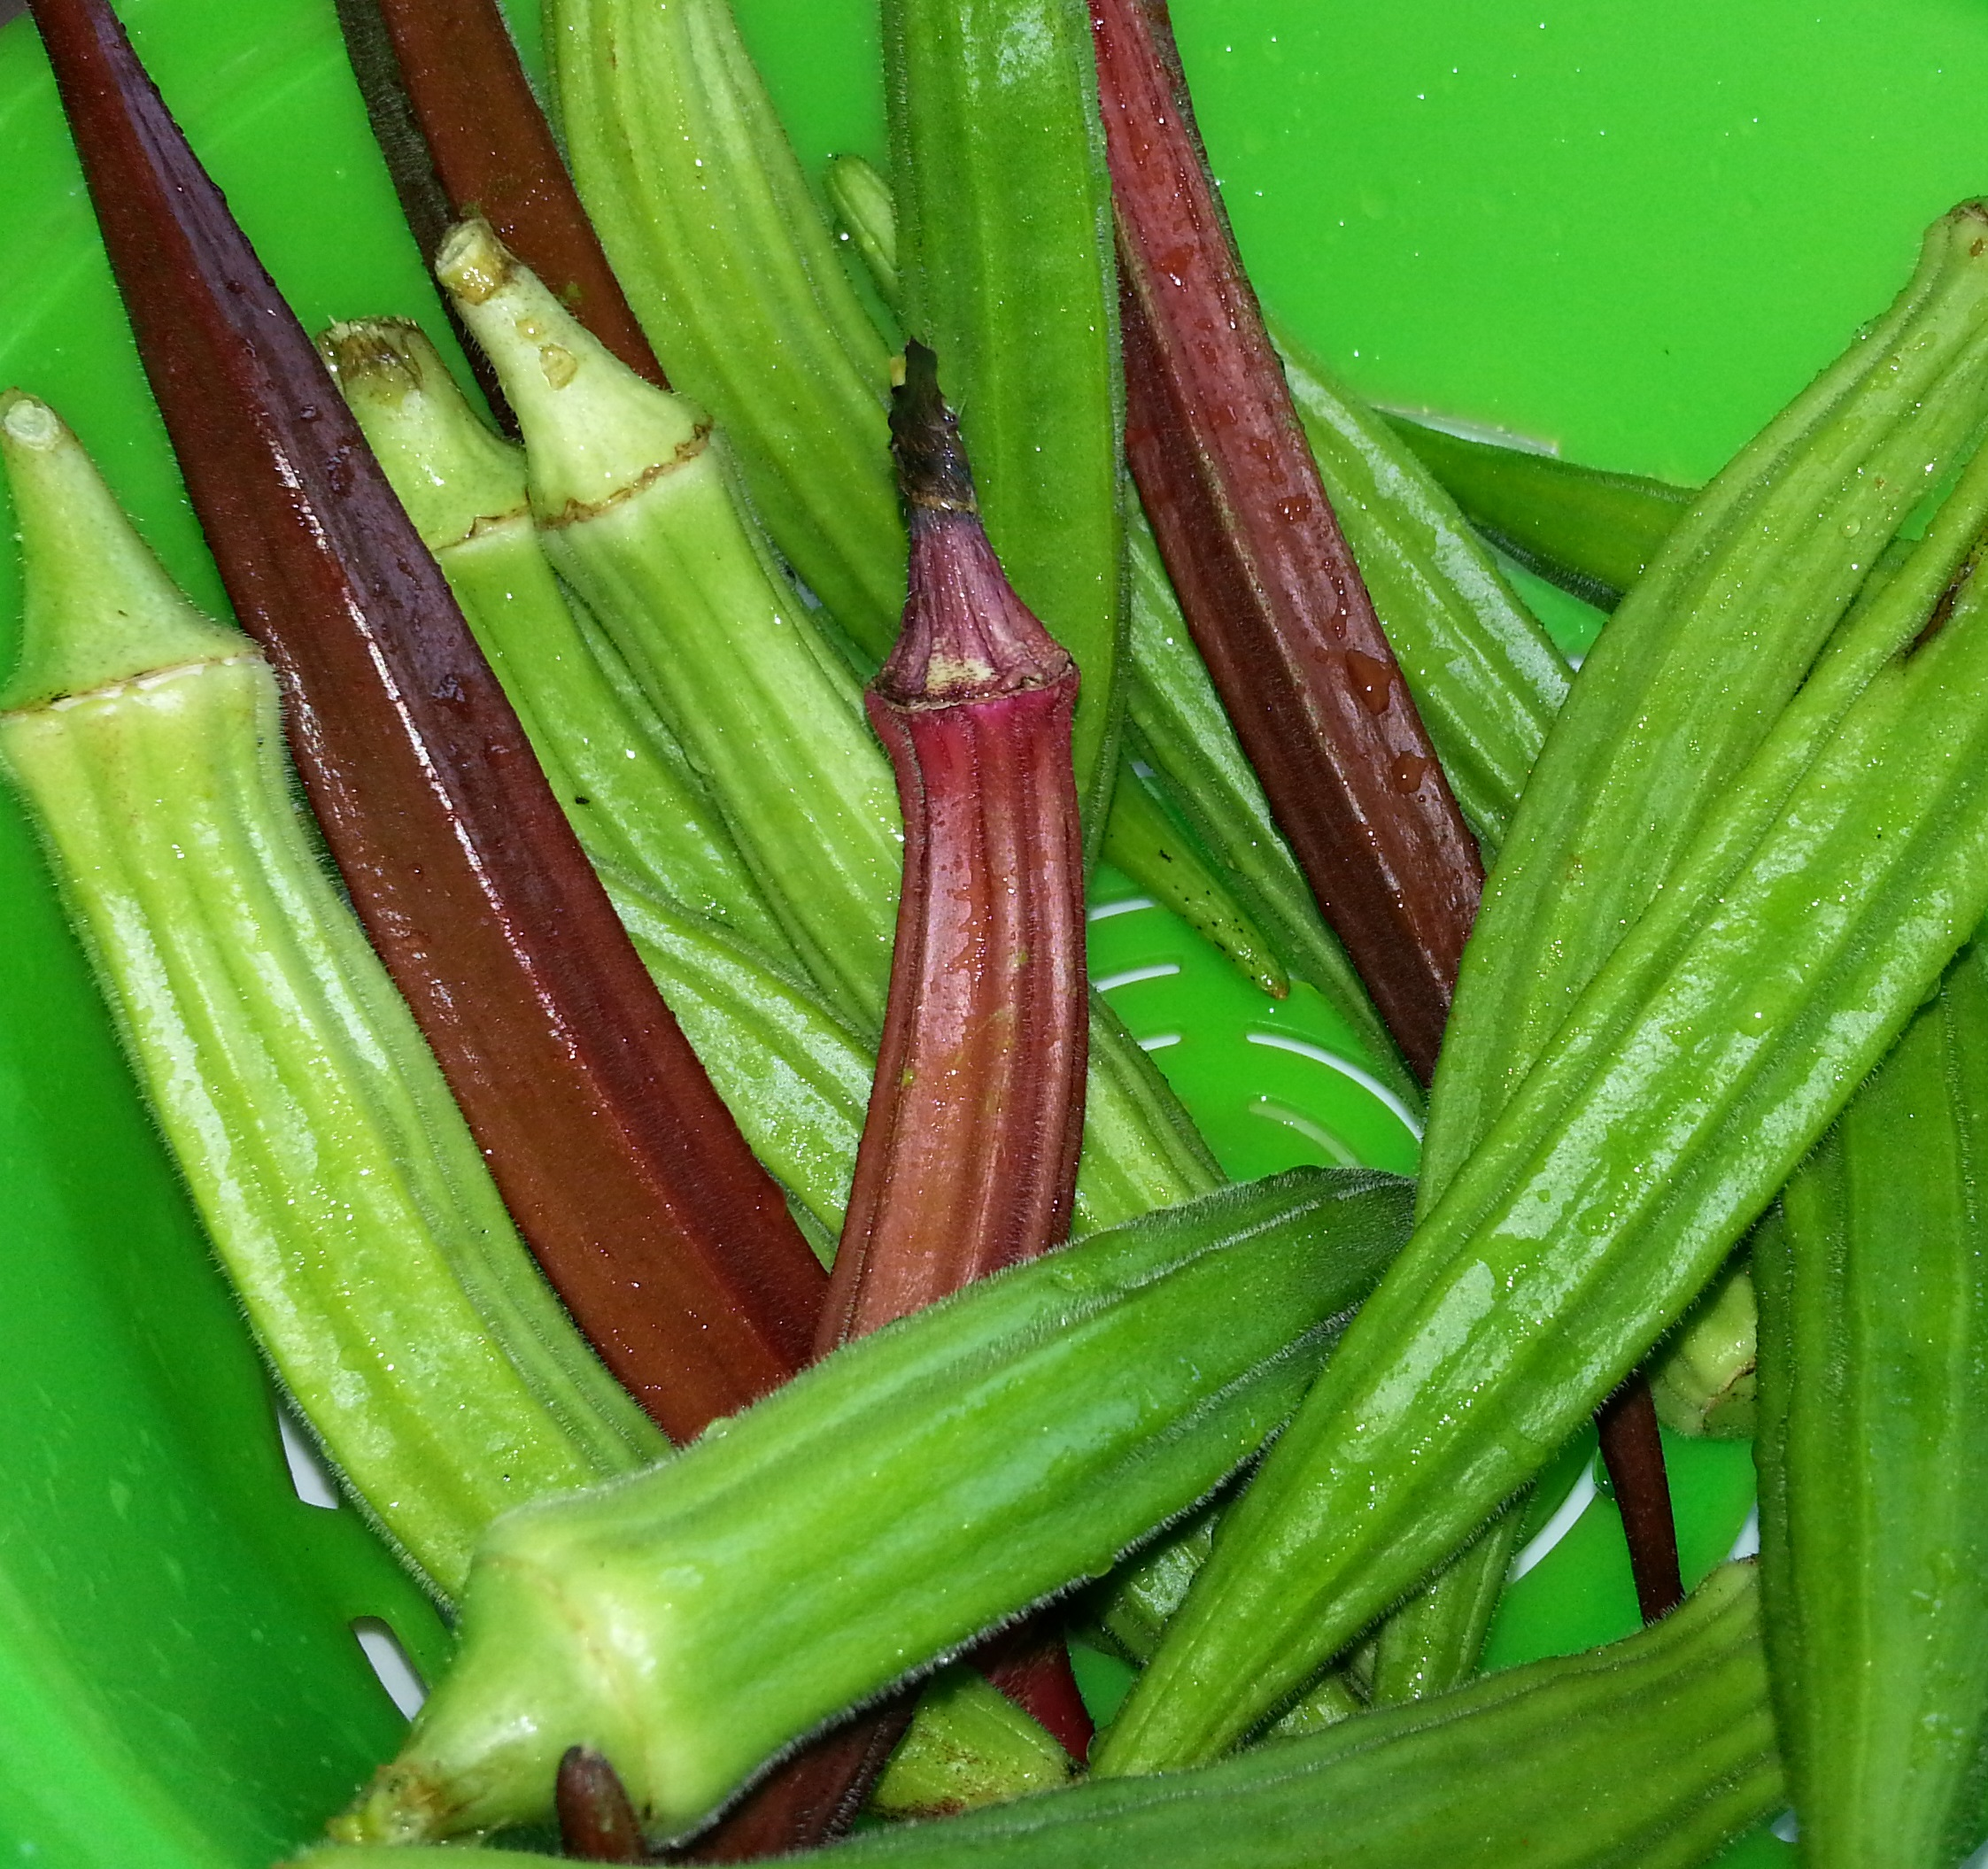 I Have Been Harvesting Okra Since The Middle Of July Ve Getting A Few Every Day Even Now In Mid September When Harvest Use Sharp Scissors